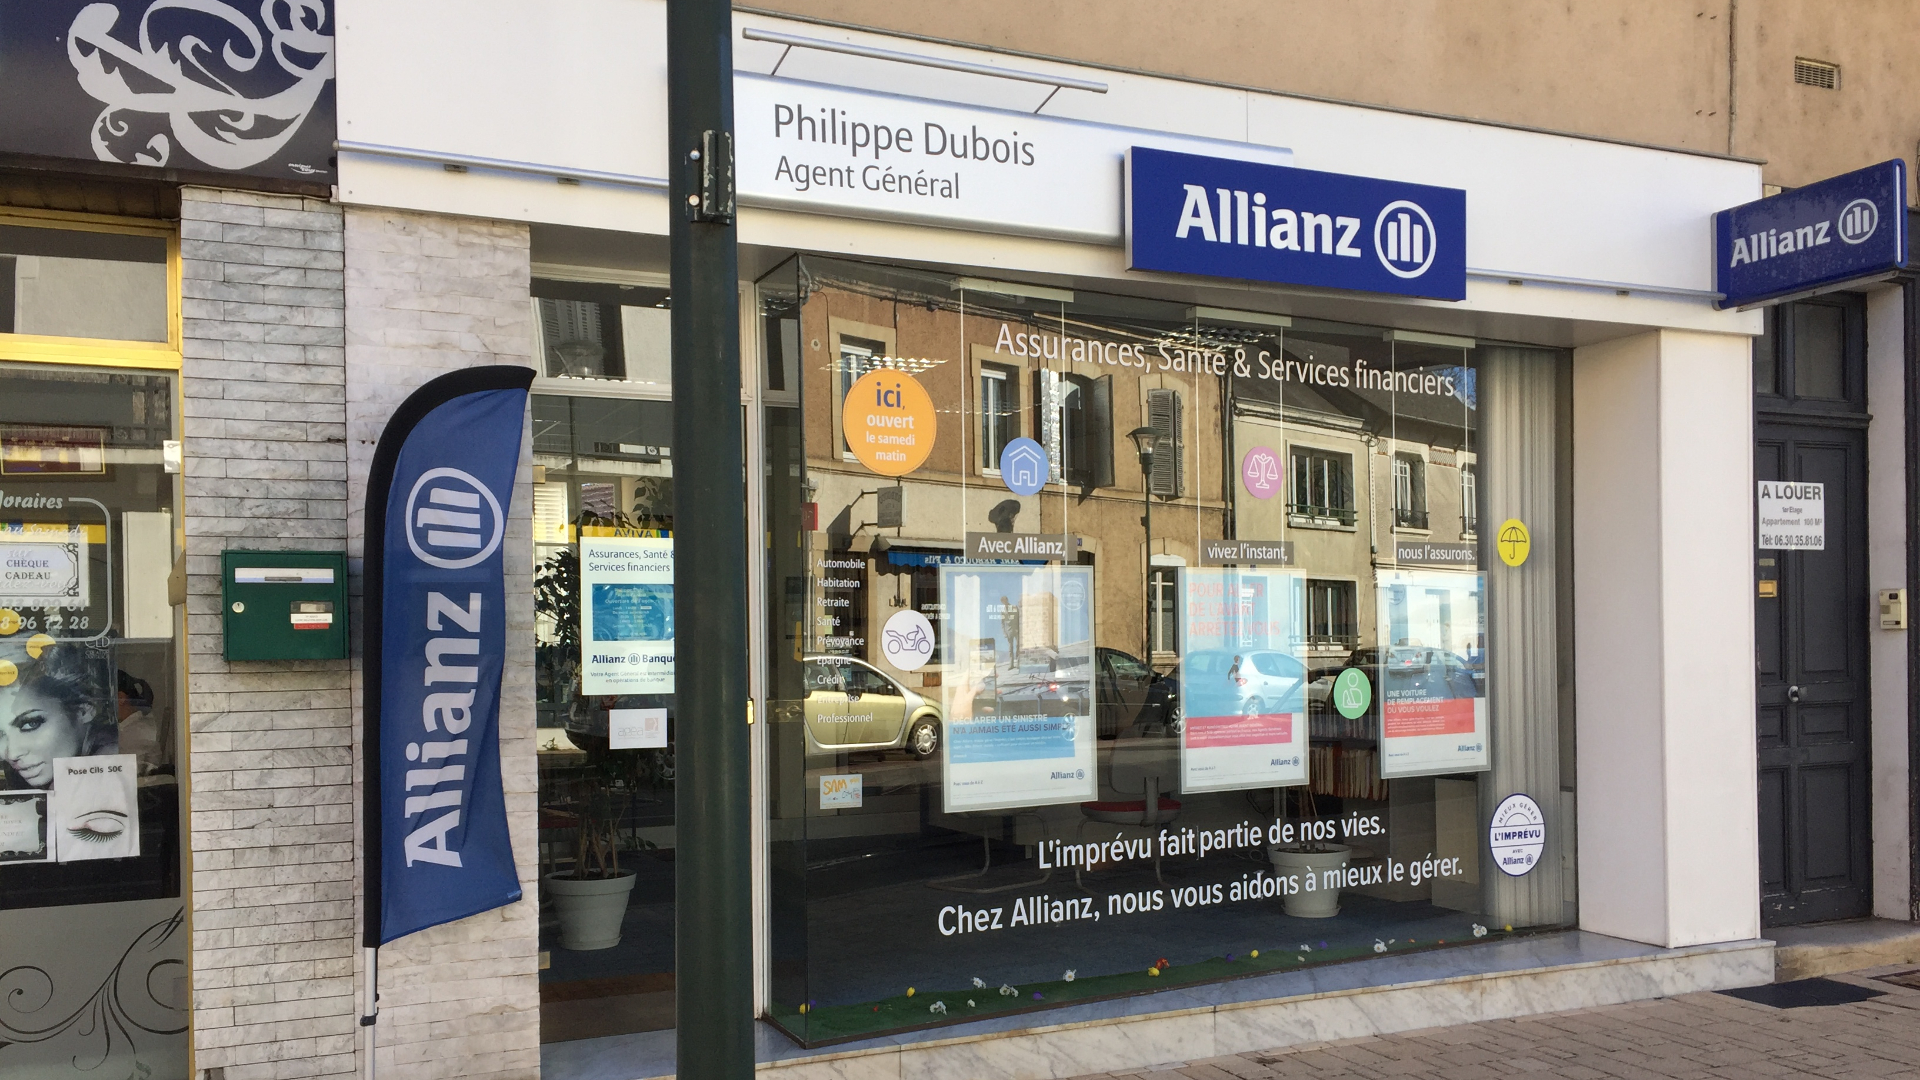 Allianz Saint amand - Philippe DUBOIS